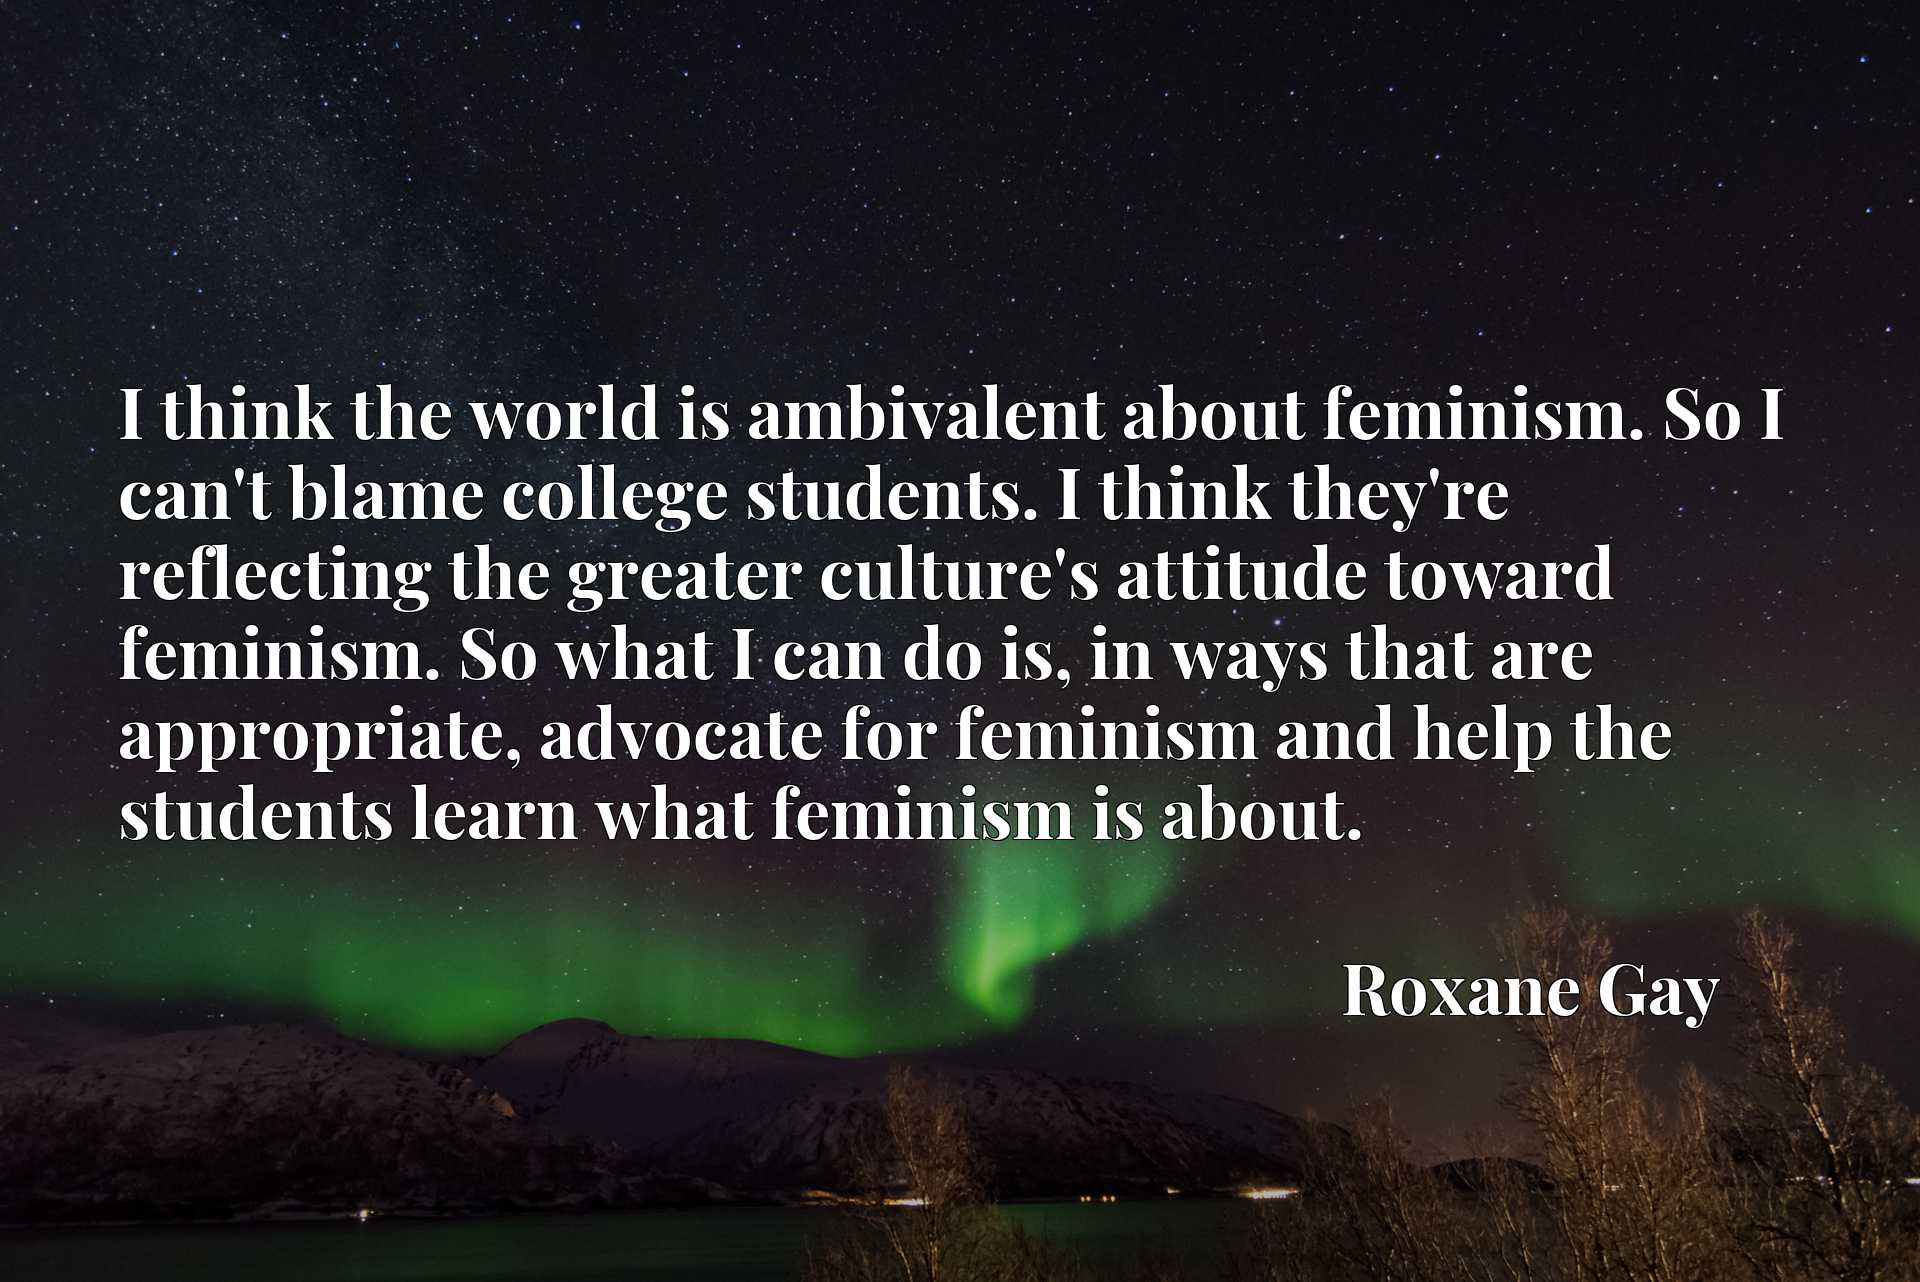 I think the world is ambivalent about feminism. So I can't blame college students. I think they're reflecting the greater culture's attitude toward feminism. So what I can do is, in ways that are appropriate, advocate for feminism and help the students learn what feminism is about.